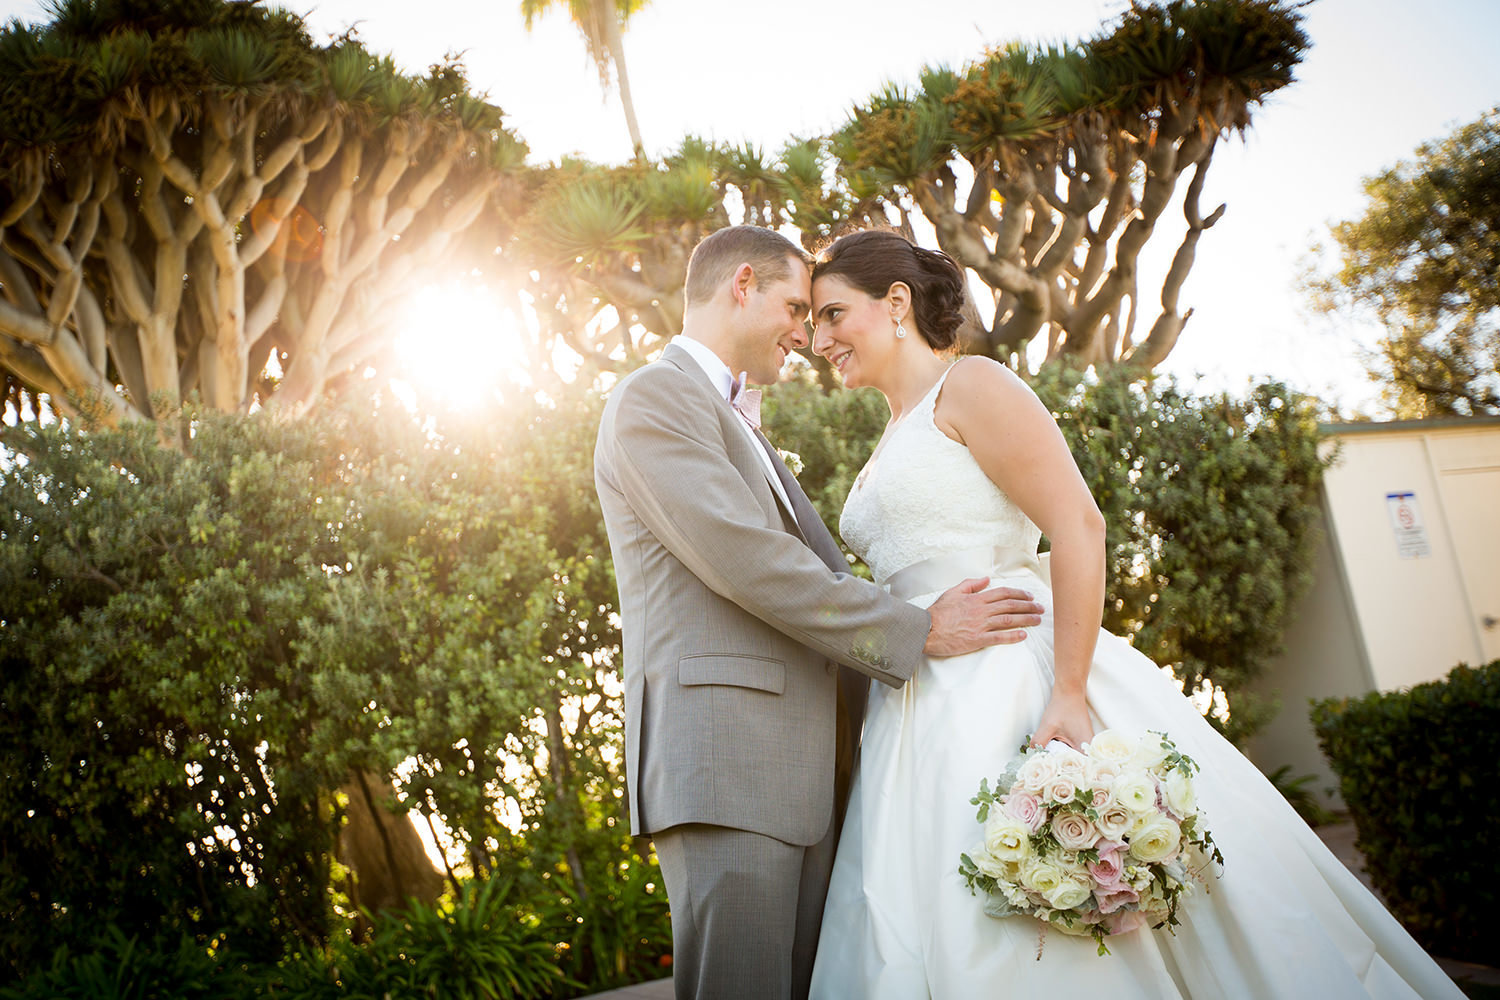 Beautiful sun flare for this wedding portrait